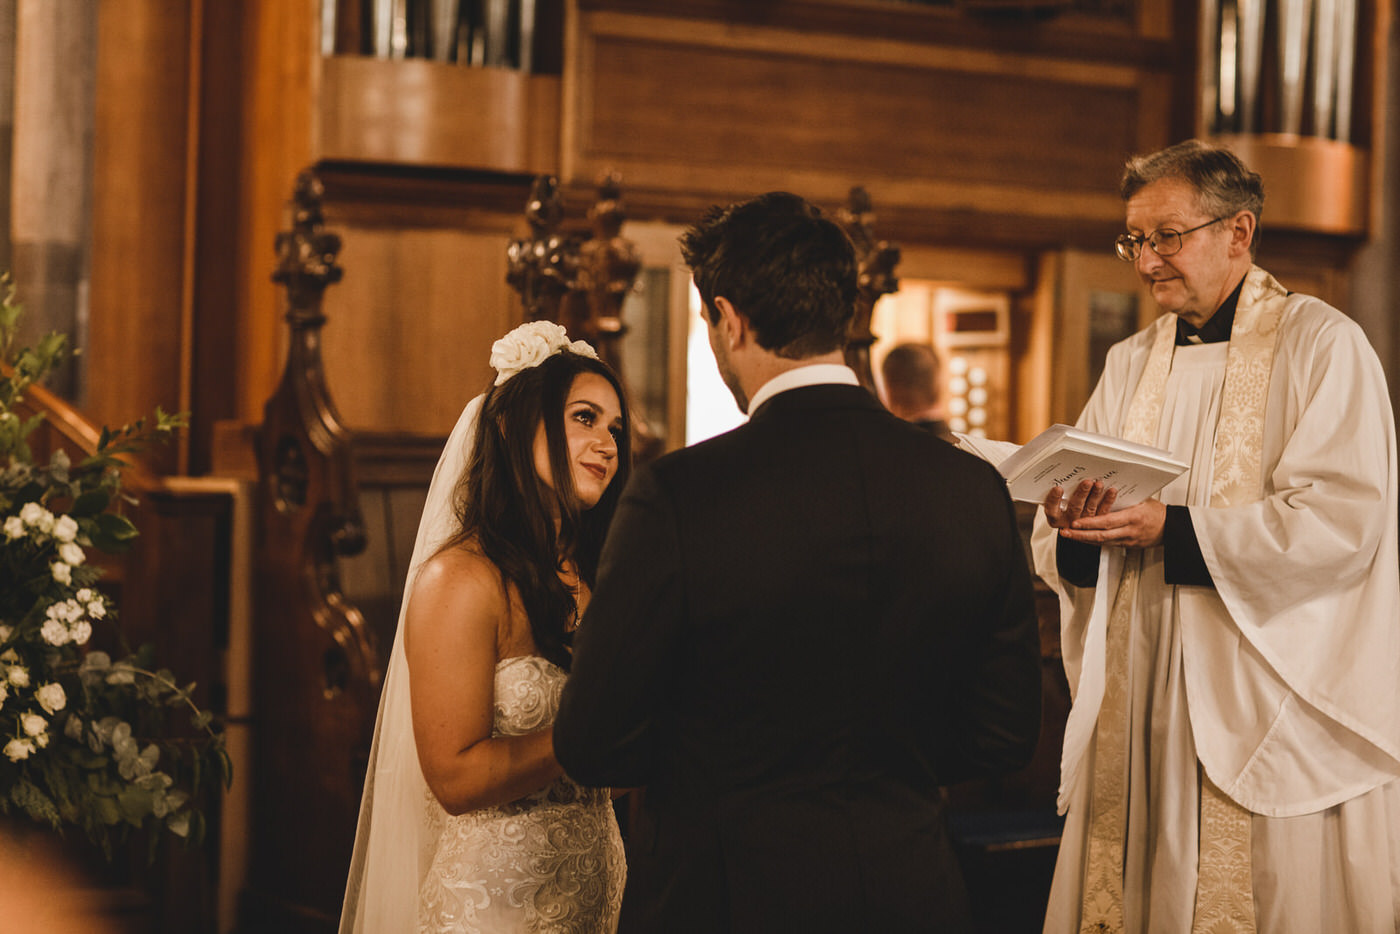 the bride looks on lovingly at her groom as they exchange their vows